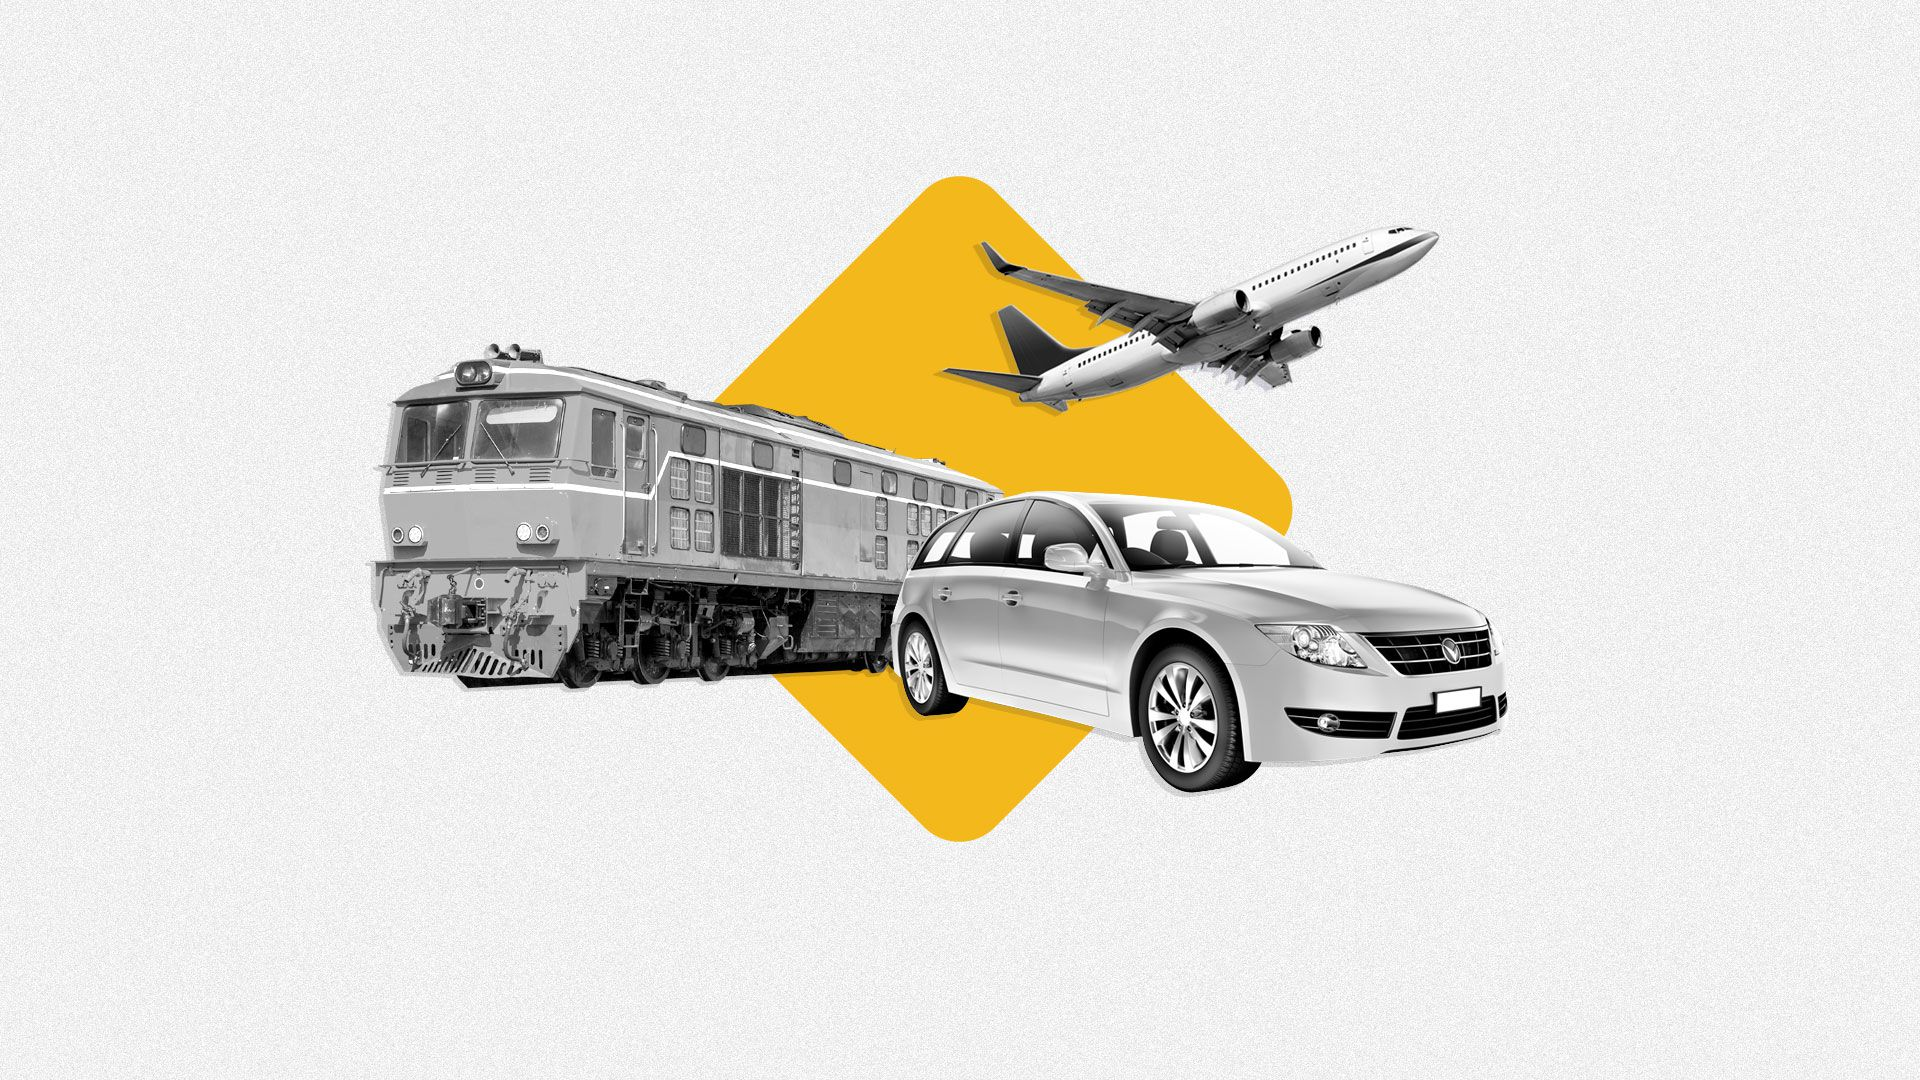 Photo illustration of train, plane, and a car. Caution sign behind the vehicles.